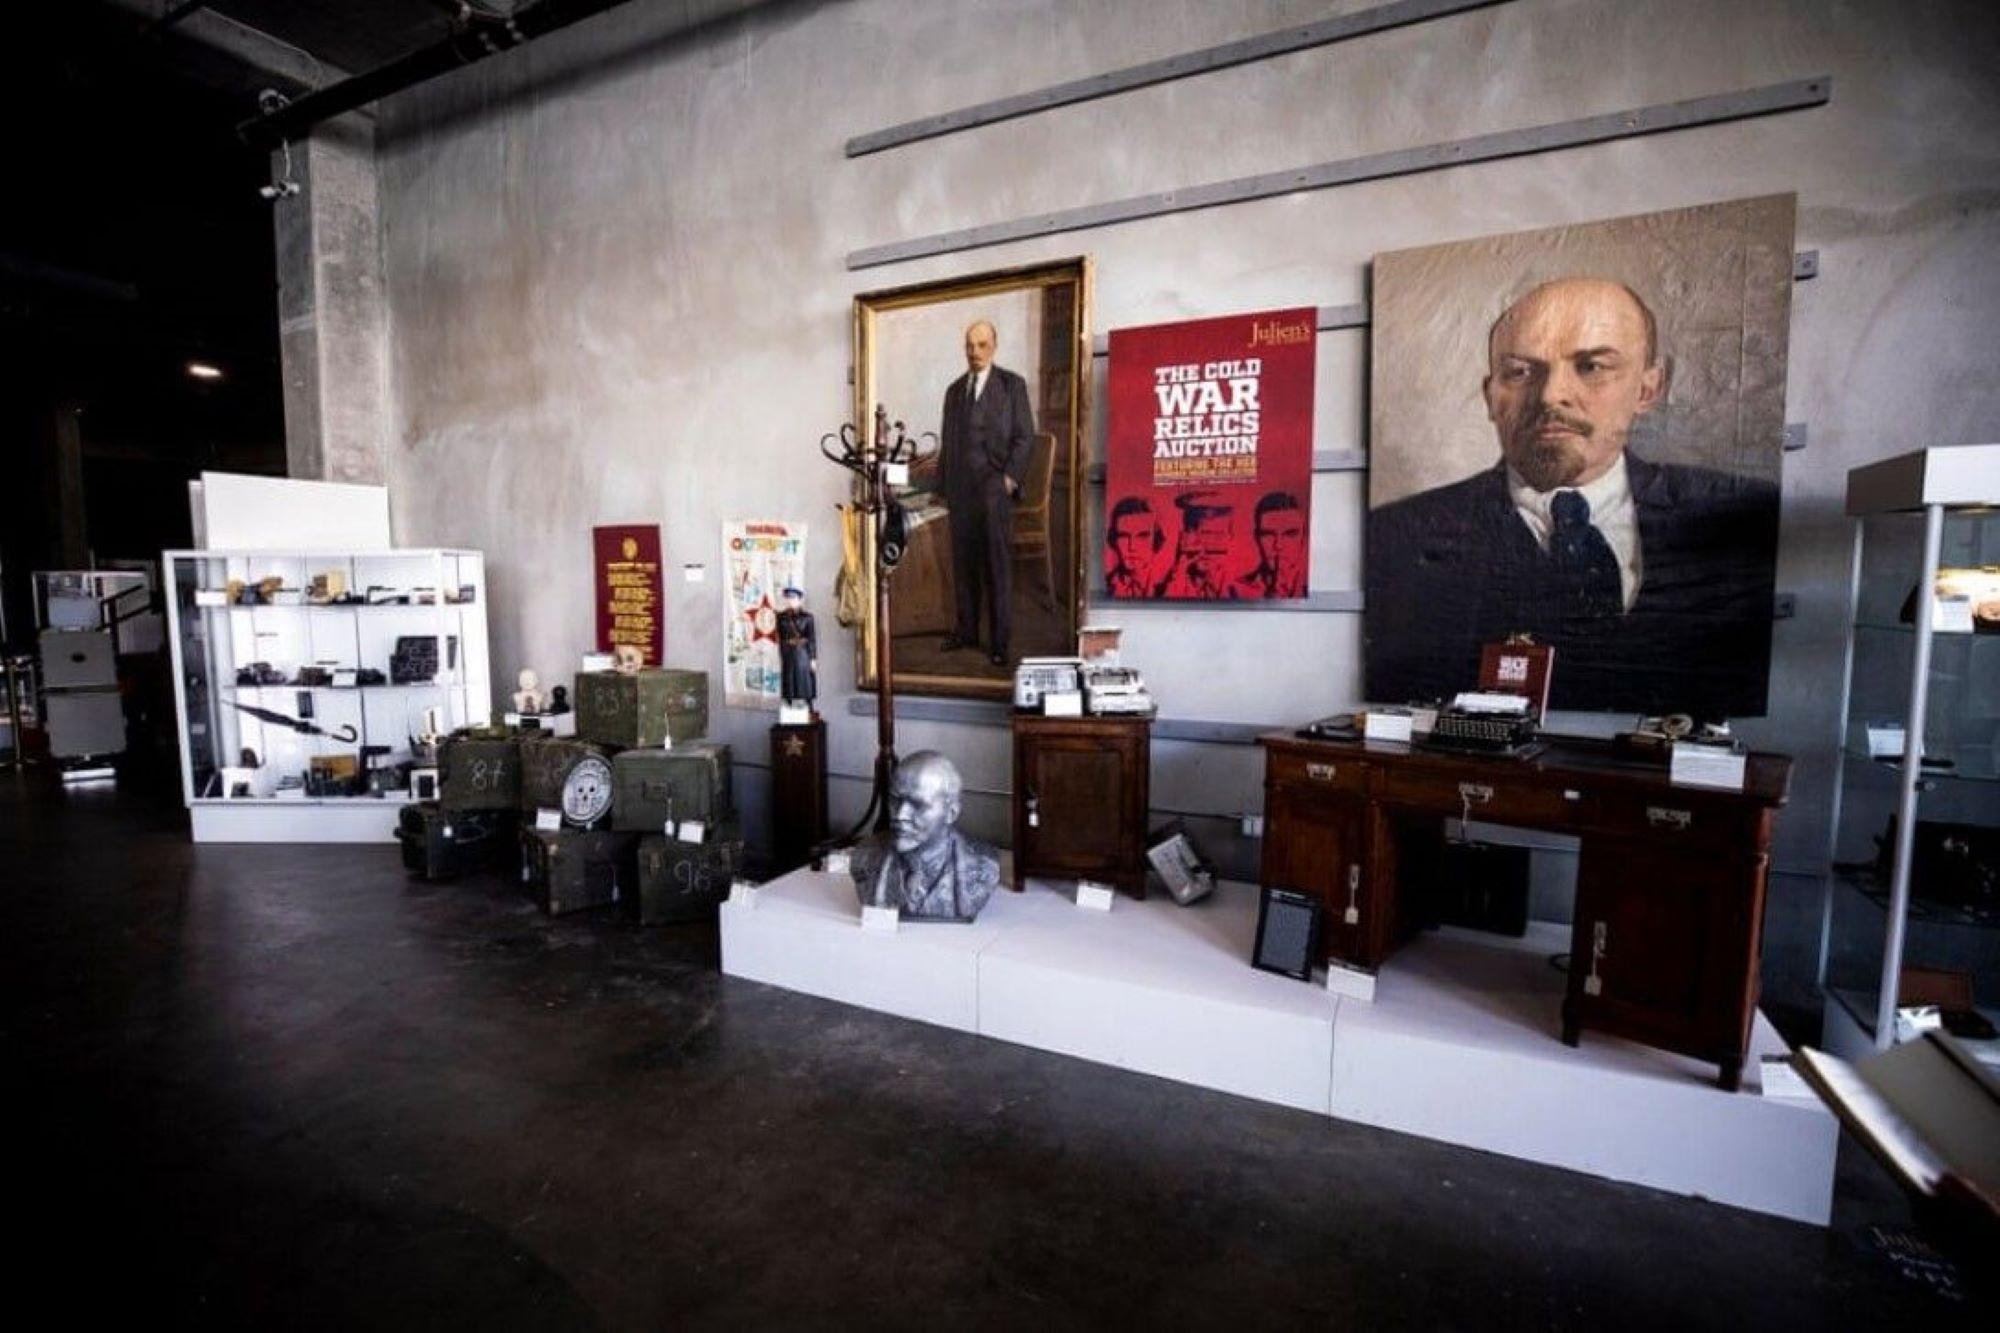 Soviet relics from the Cold War went under the hammer at auction in the United States